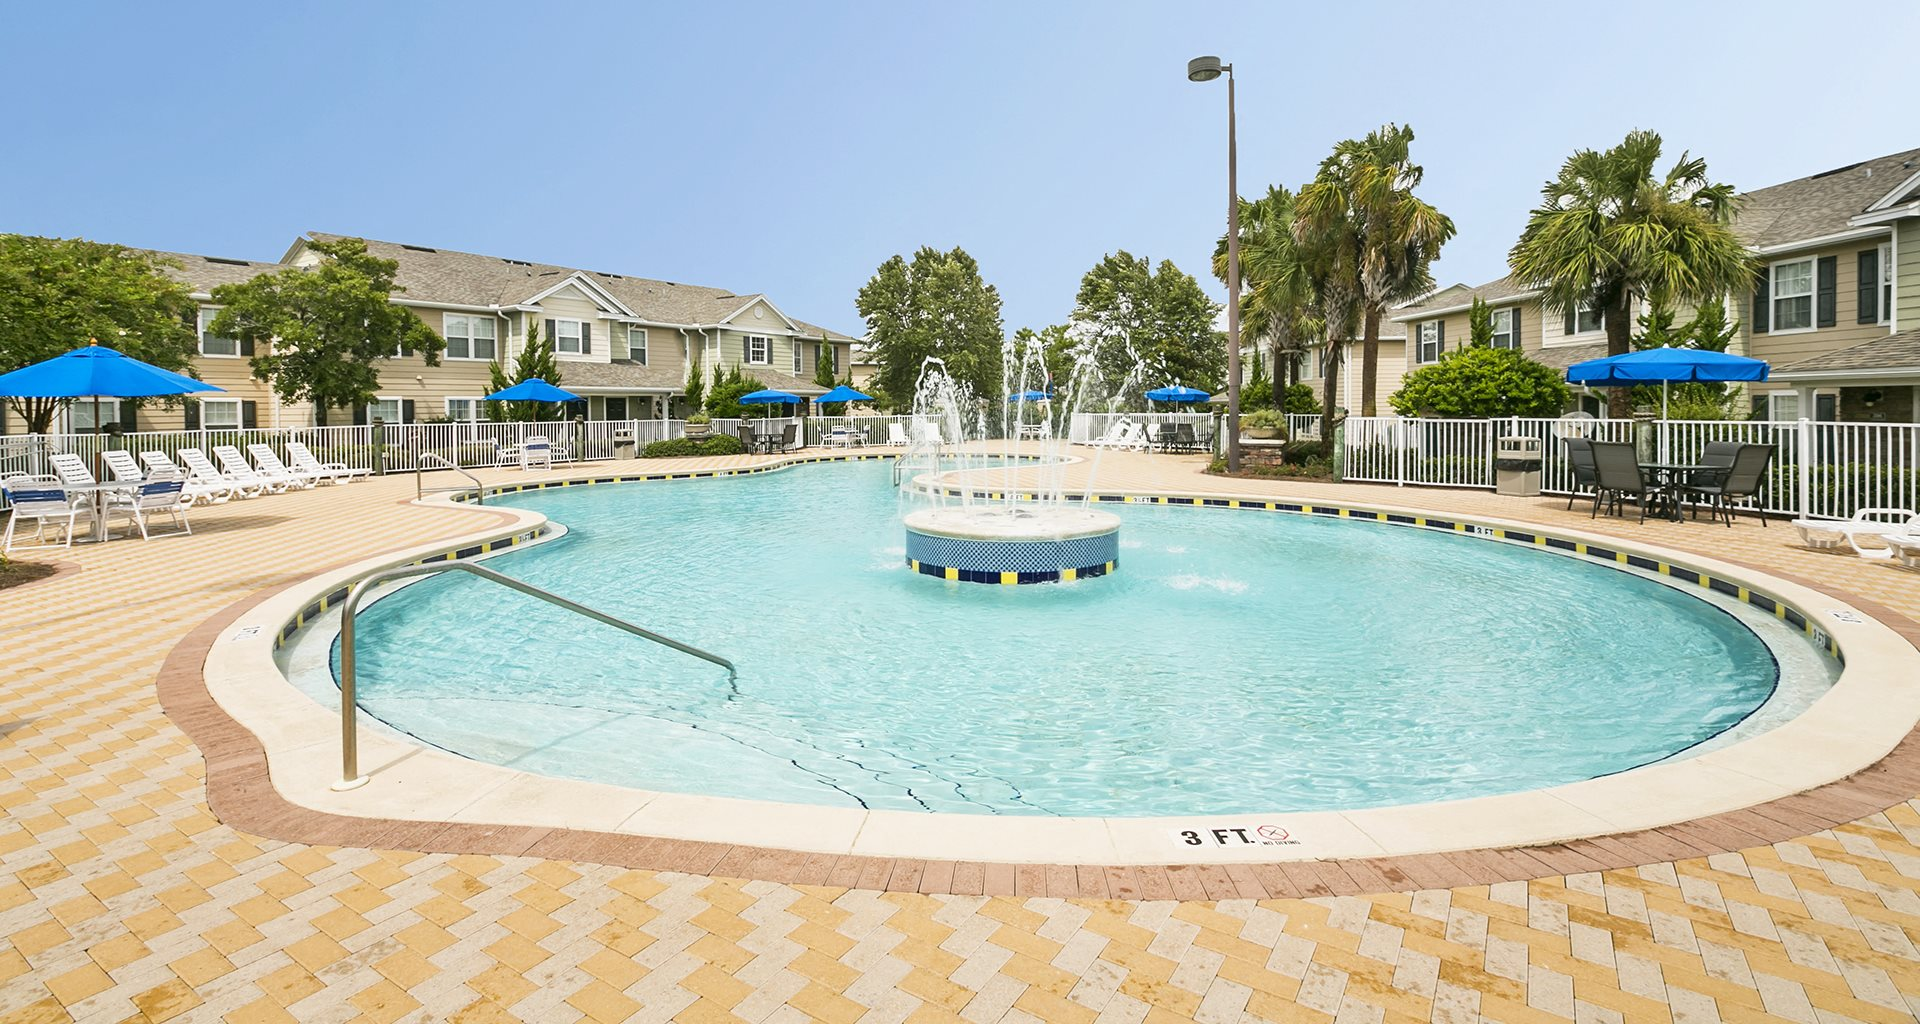 Nautilus Cove Condominiums for rent in Panama City Beach, FL. Make this community your new home or visit other Concord Rents communities at ConcordRents.com. Pool